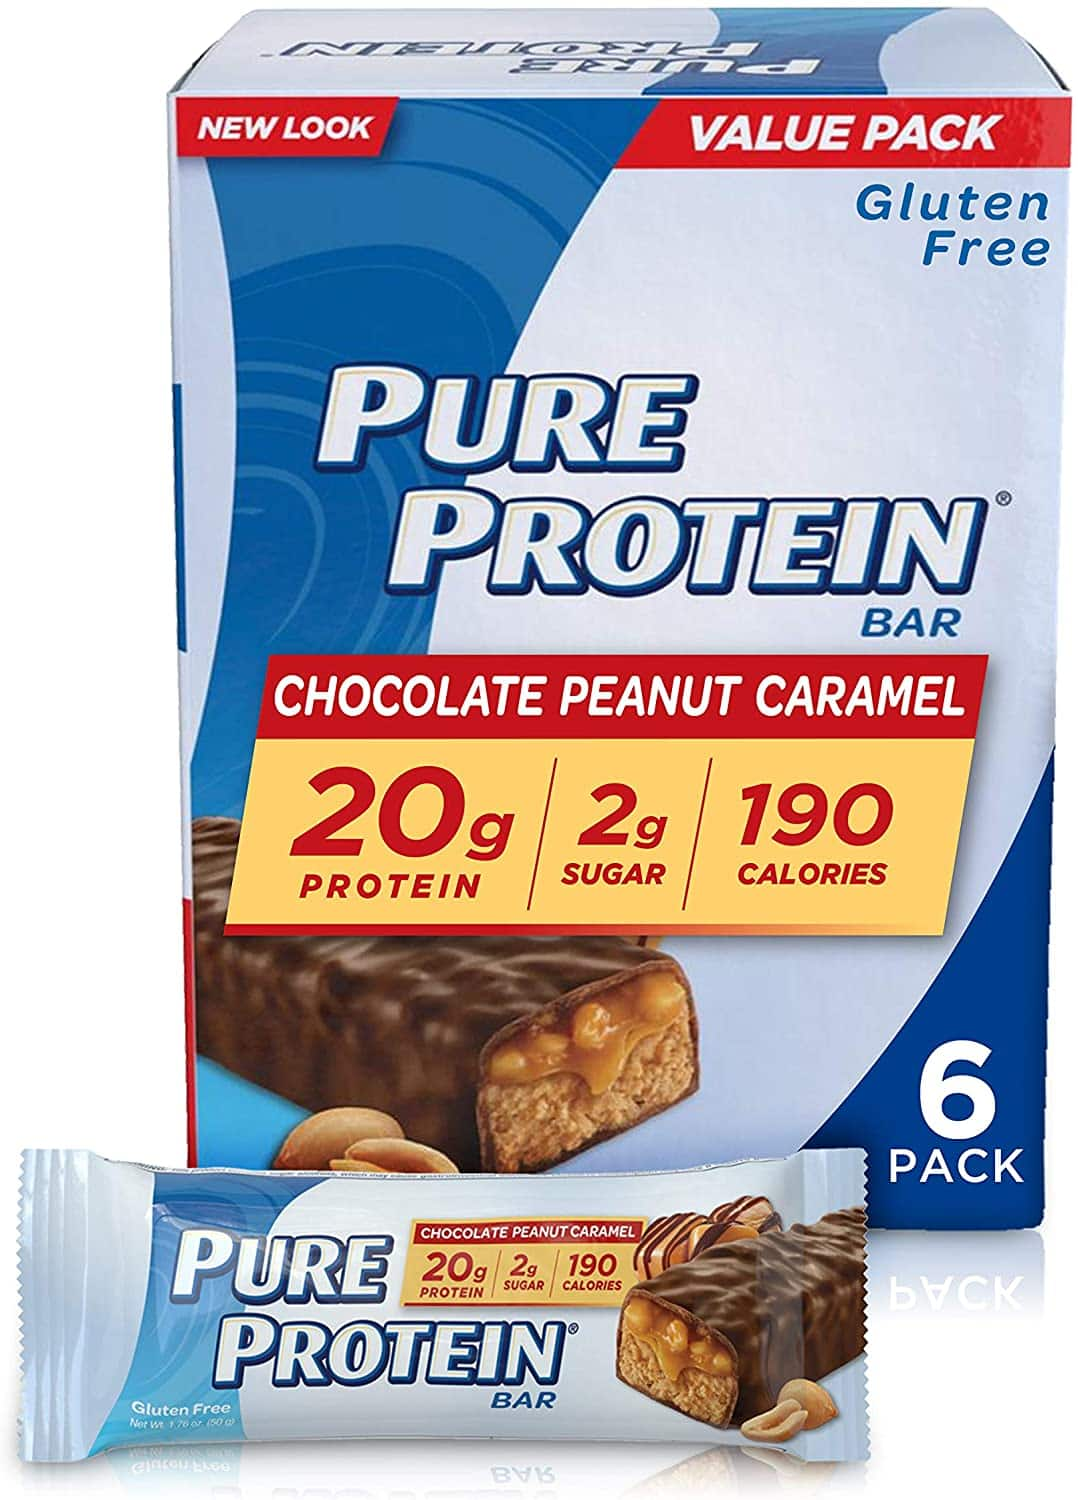 Pure Protein Bars, High Protein, Nutritious Snacks to Support Energy, Low Sugar, Gluten Free, Chocolate Peanut Caramel, 1.76oz, 6 Pack $4.61